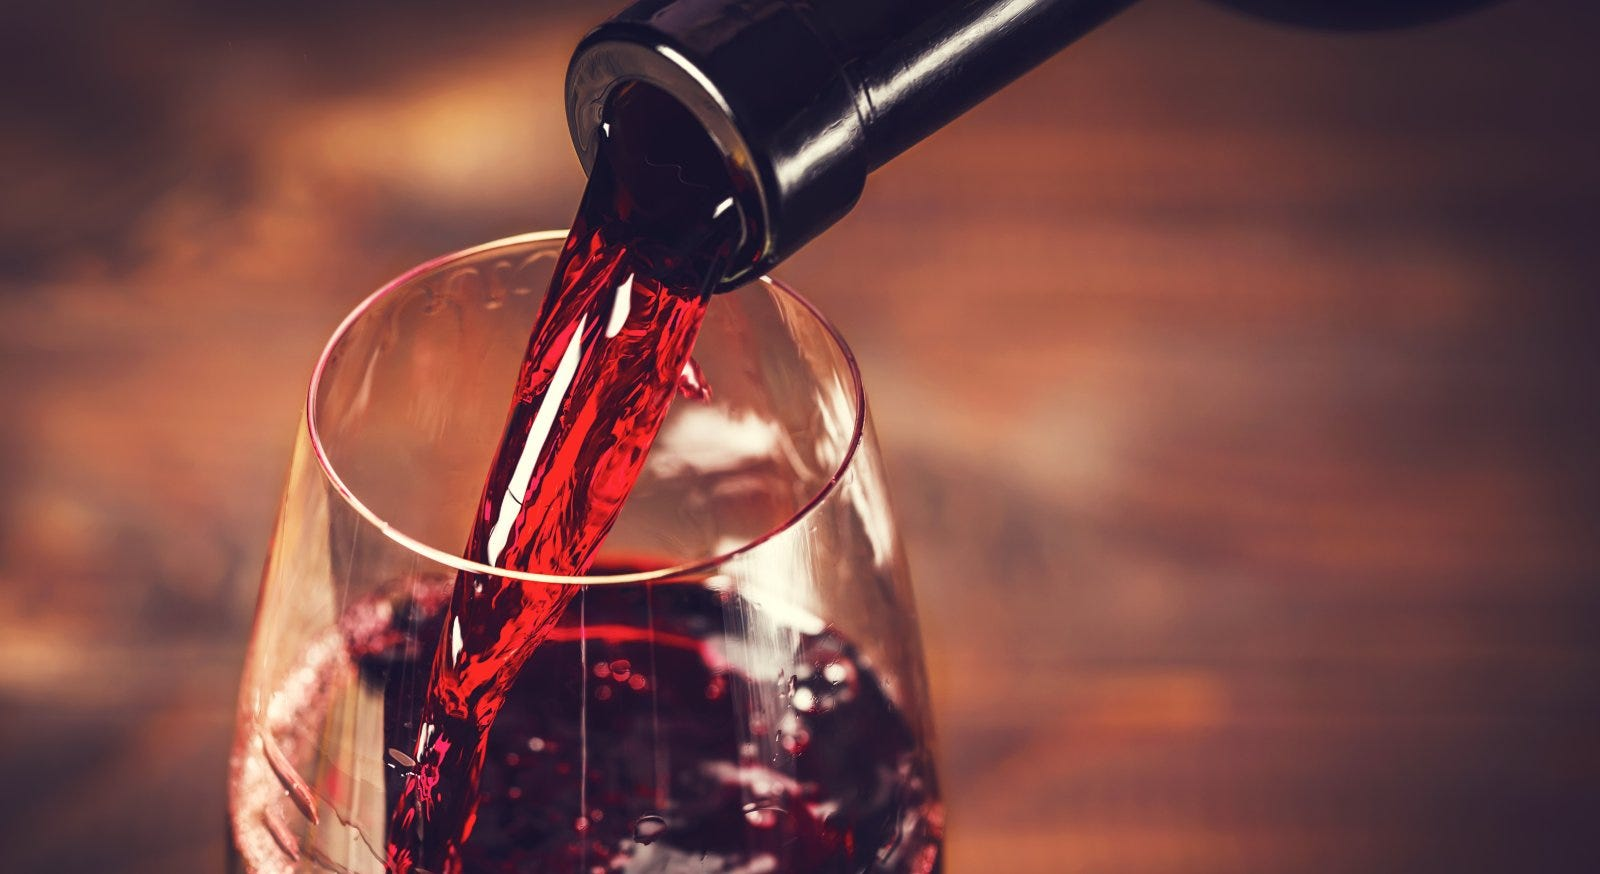 Pouring red wine into a glass against a wooden background